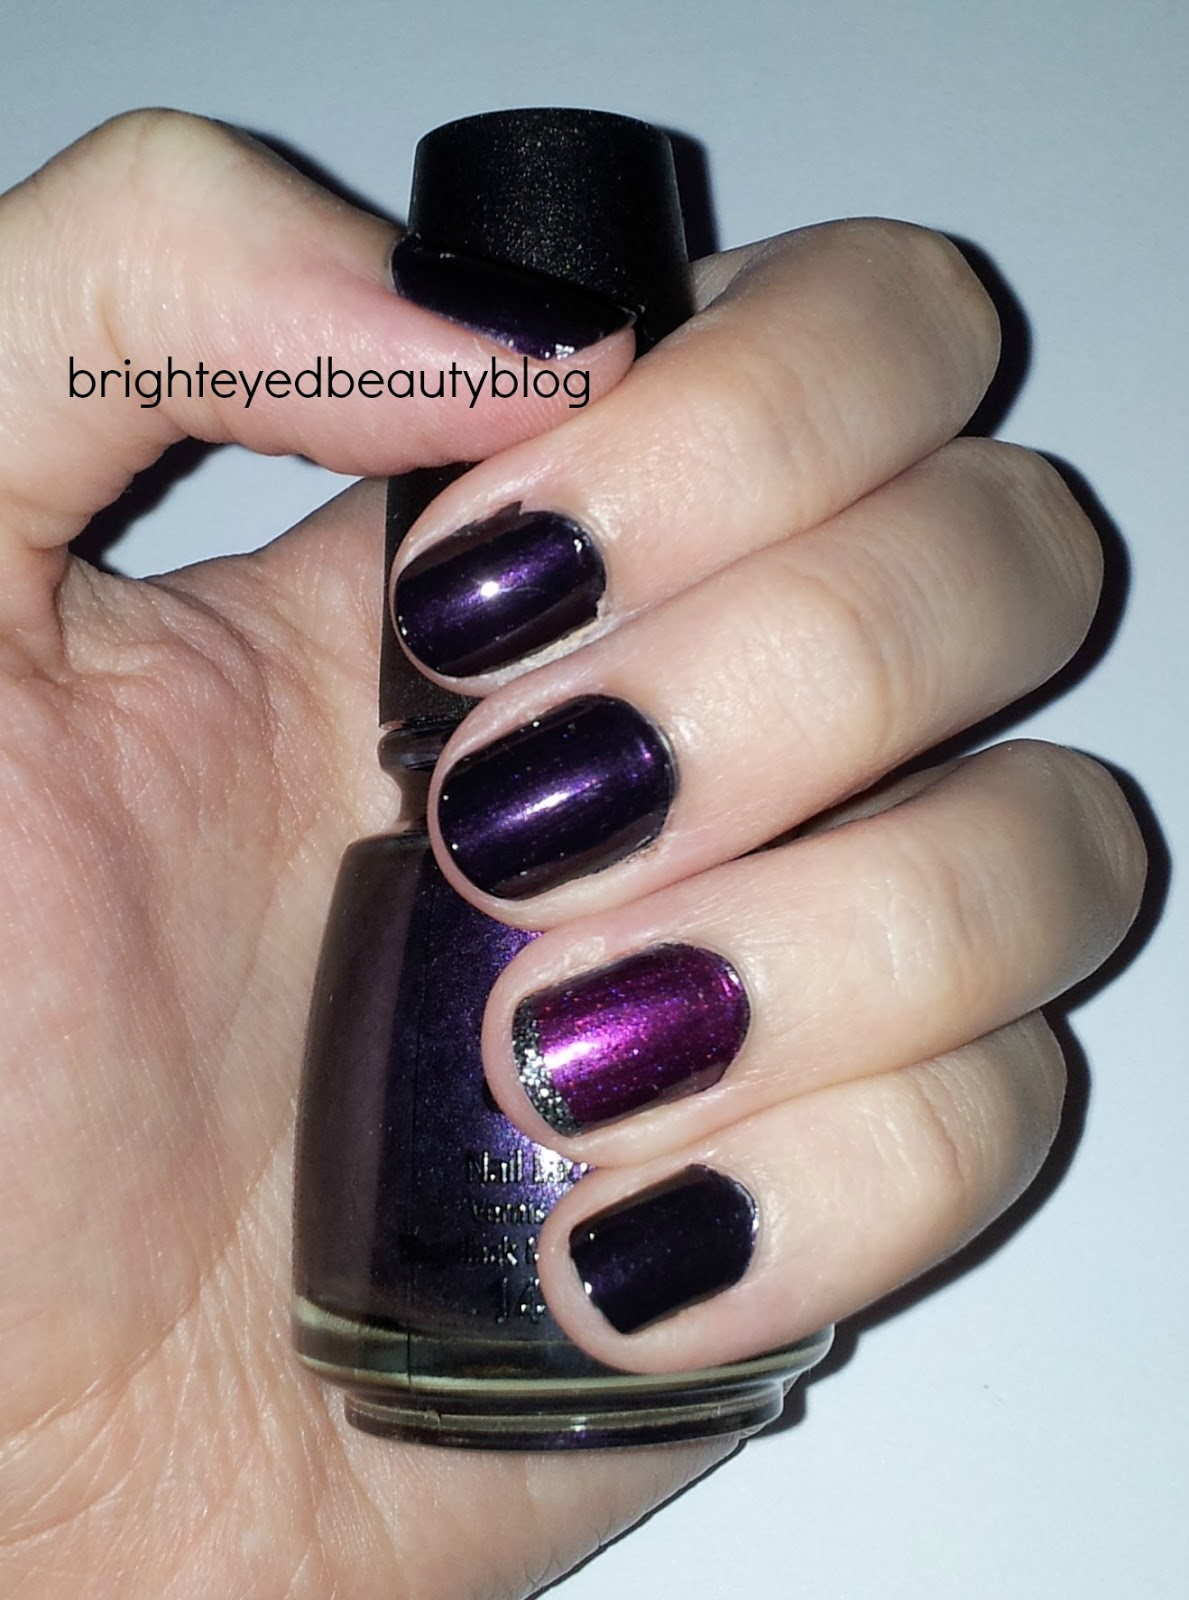 Swatches of China Glaze Nail Polish in Midnight Ride